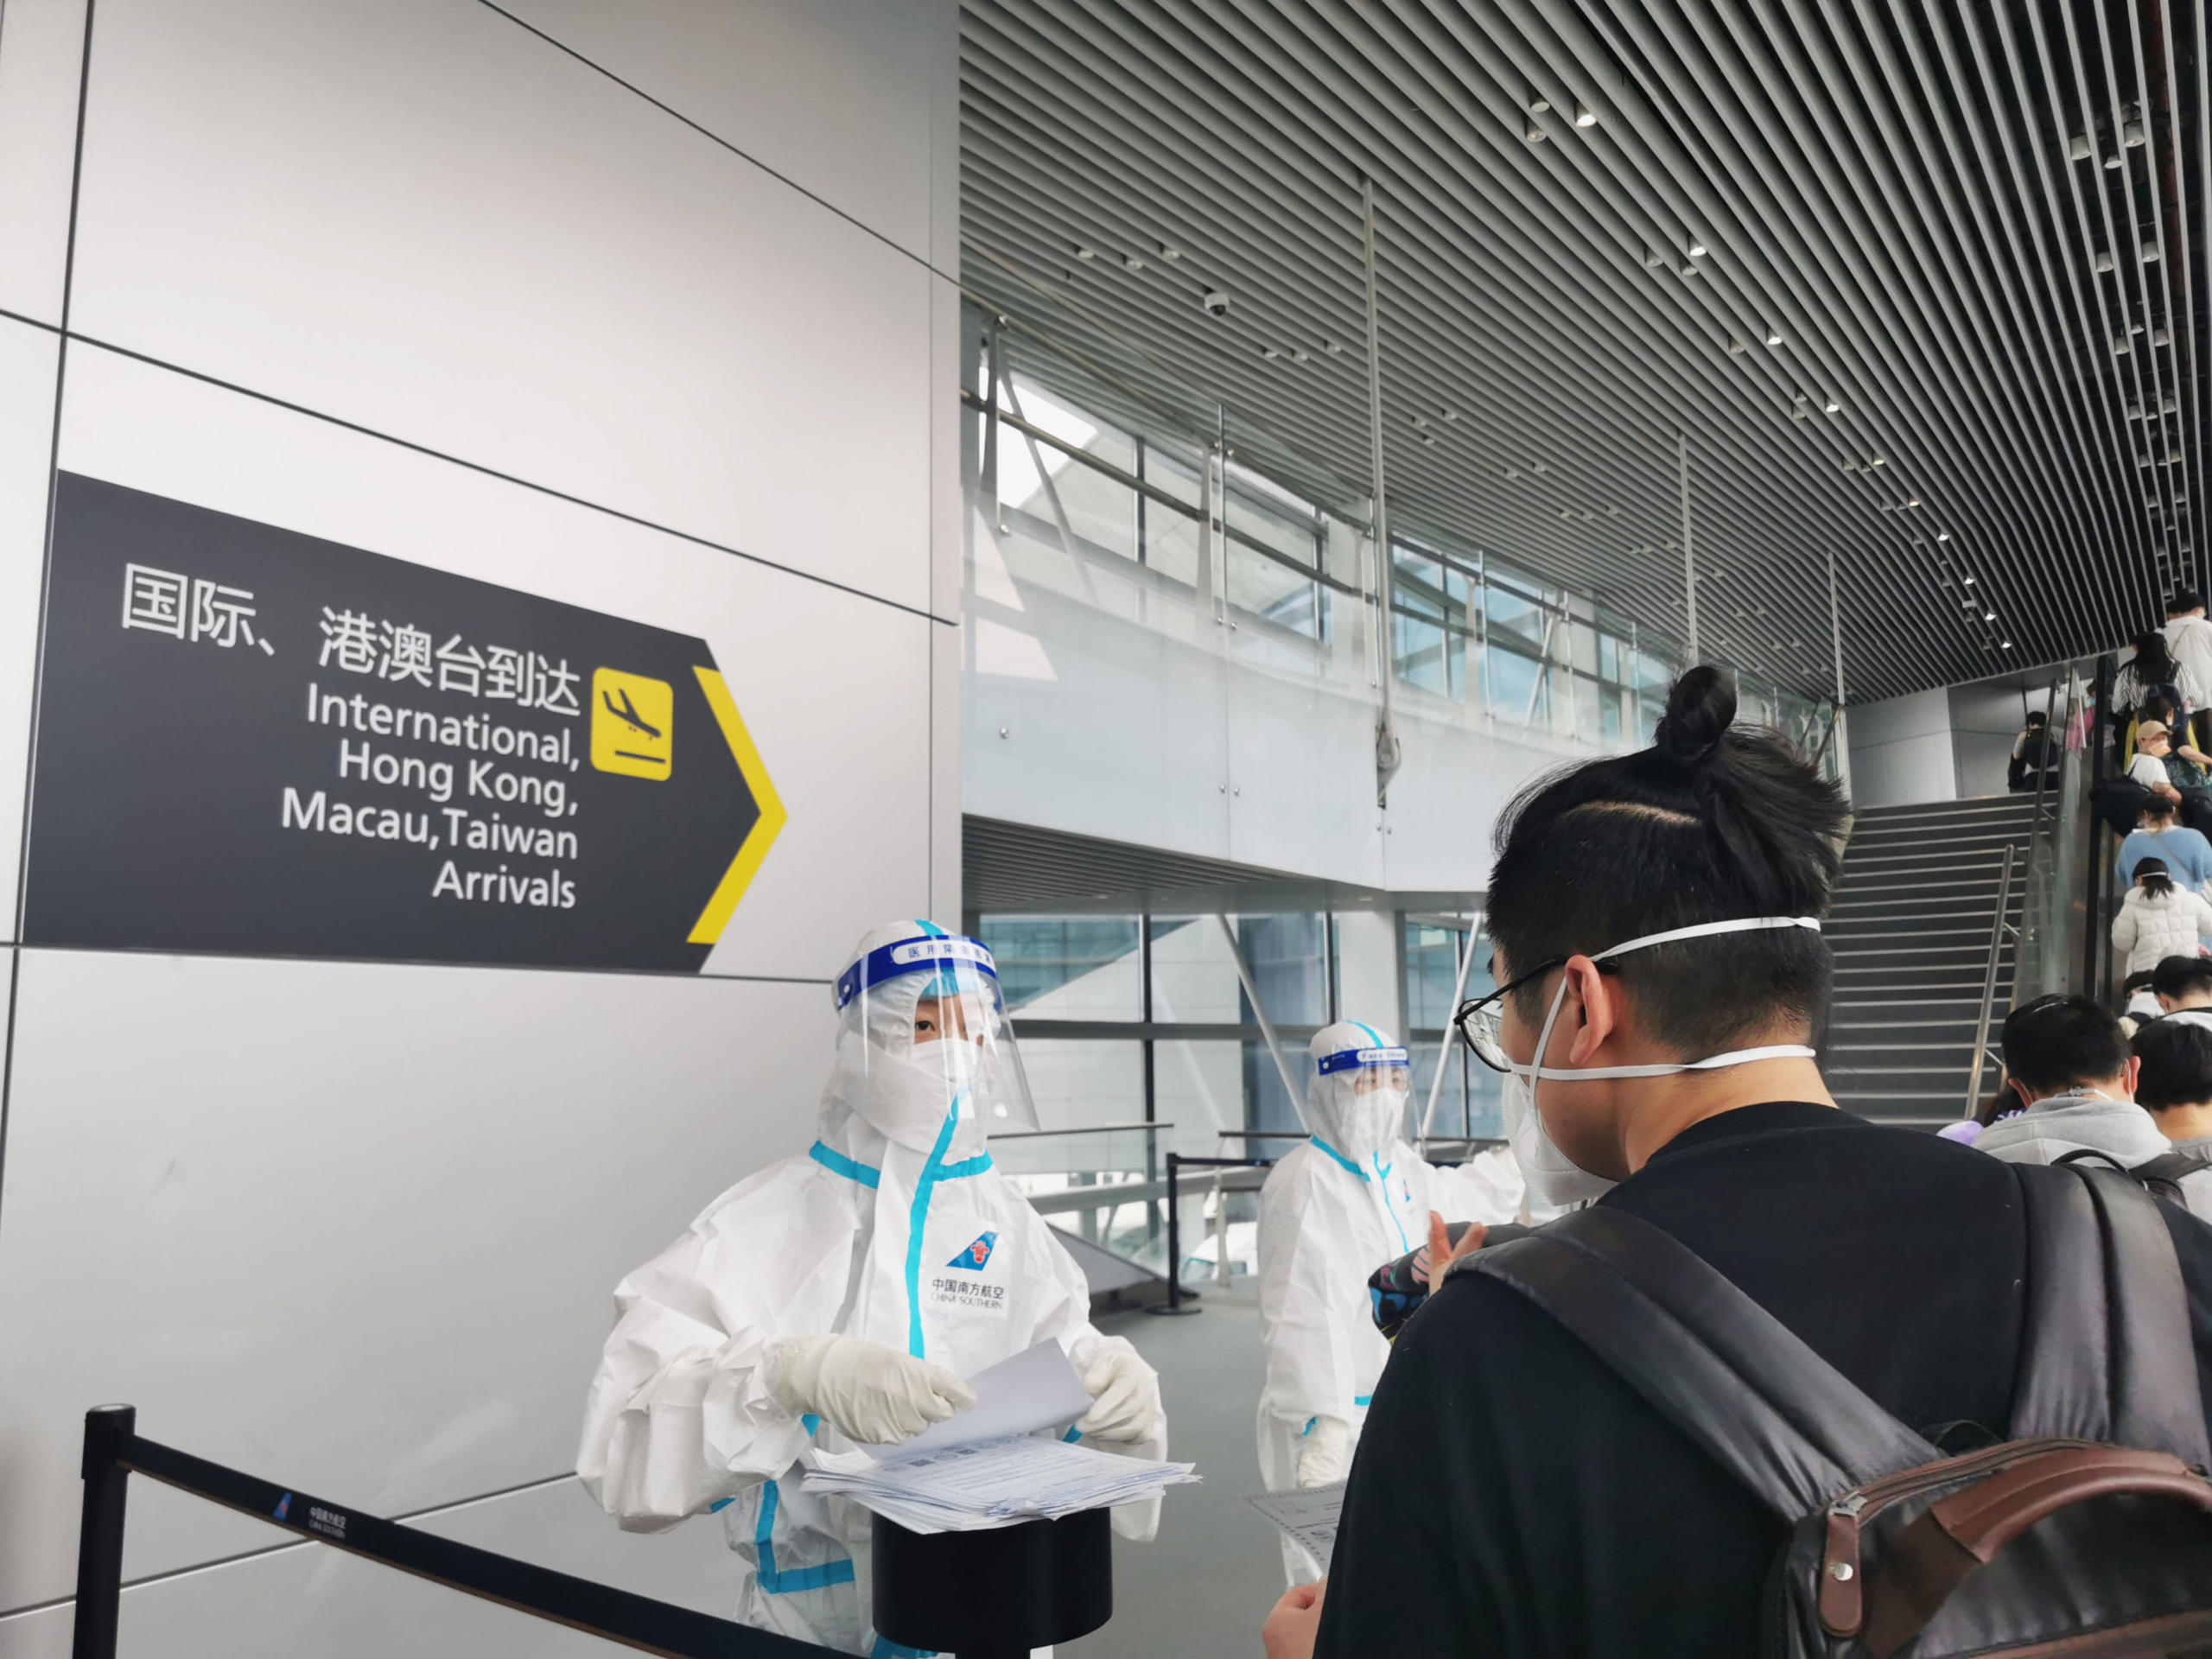 International student Xiyu Zha also made the difficult choice to return home when Melbourne entered its sixth lockdown. At the international arrivals gate at Baiyun Airport in Guangzhou, China, passengers received COVID-19 epidemiological investigation numbers. Image credit: Xiyu Zha